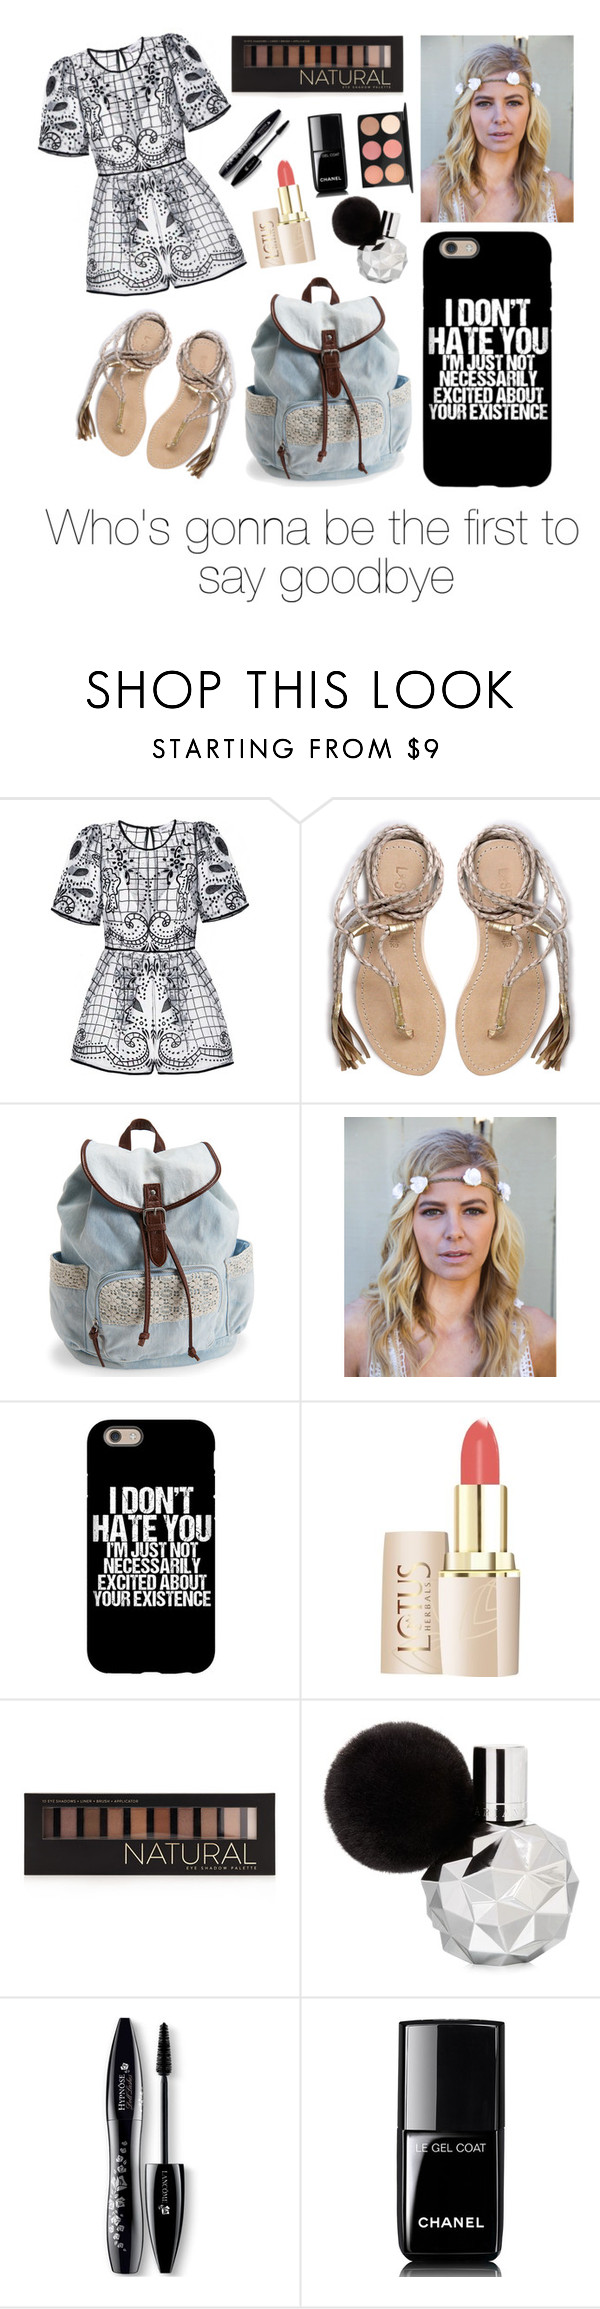 """""""Spaces"""" by hawraasaeed ❤ liked on Polyvore featuring L*Space, Aéropostale, Flower Gypsies, Forever 21, Lancôme, Chanel and MAC Cosmetics"""